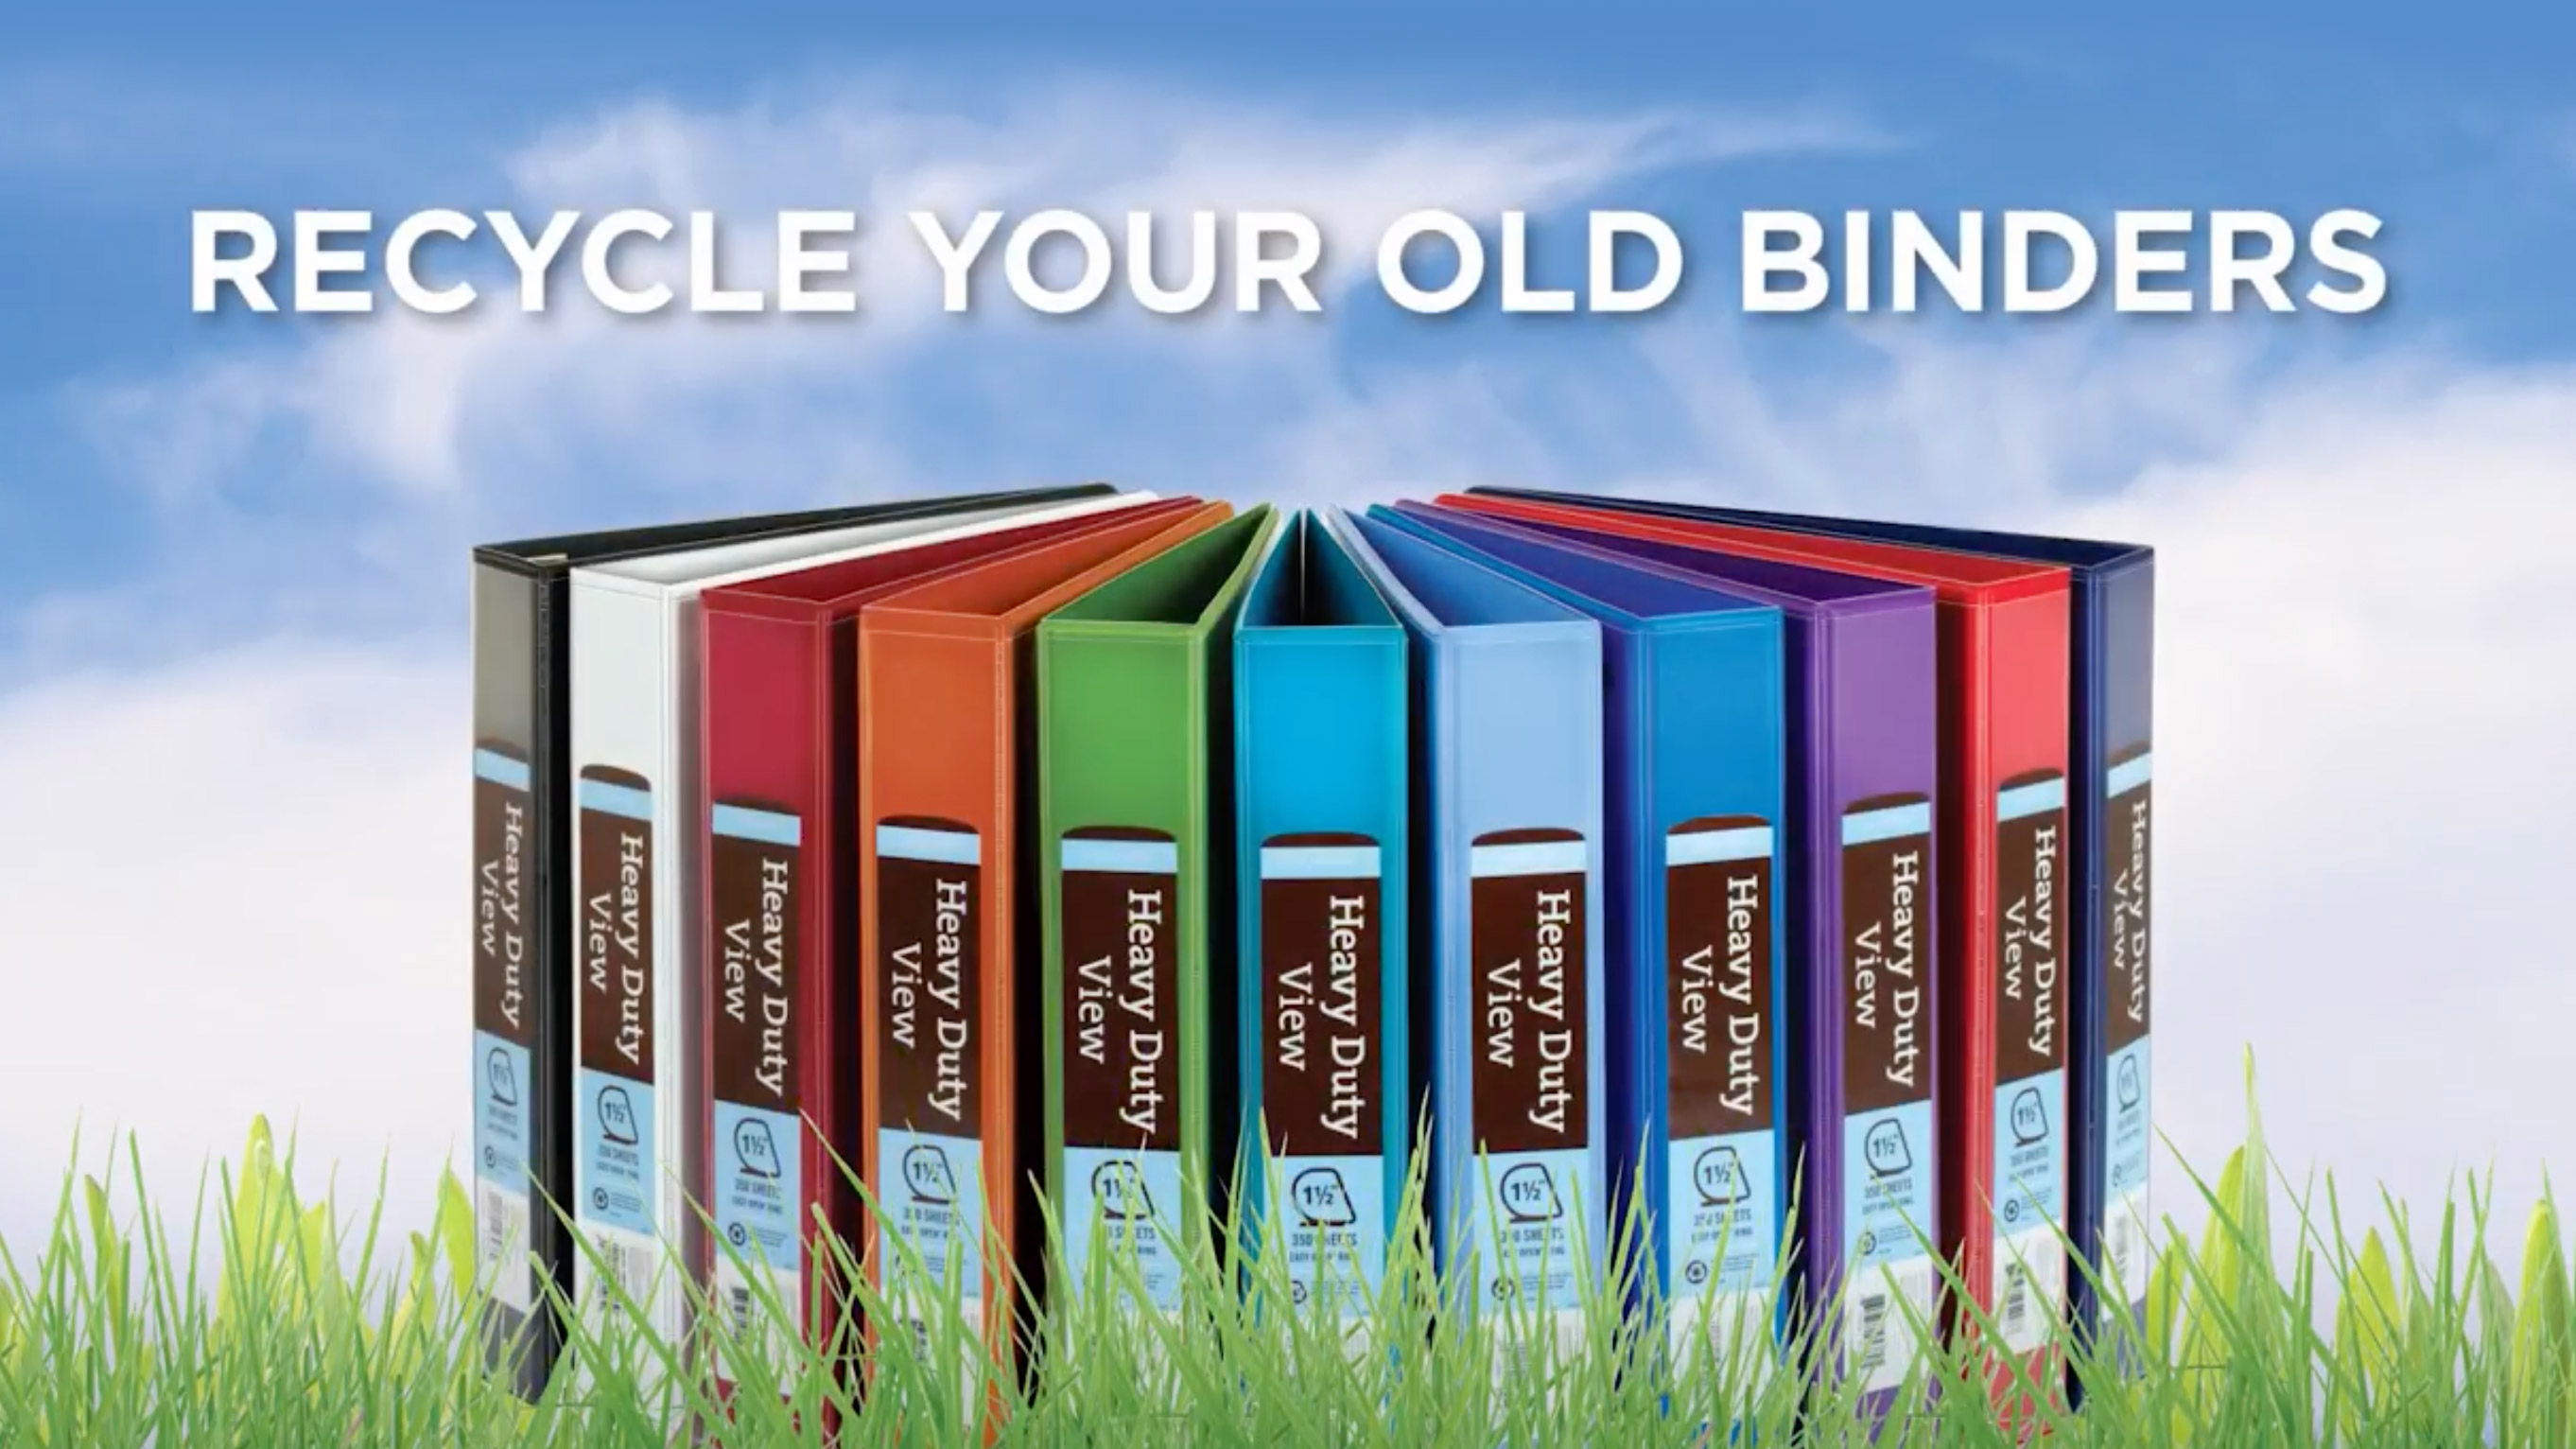 Office depot rewards coupons - Office Depot Office Max Binder Recycling Program With Terra Cycle